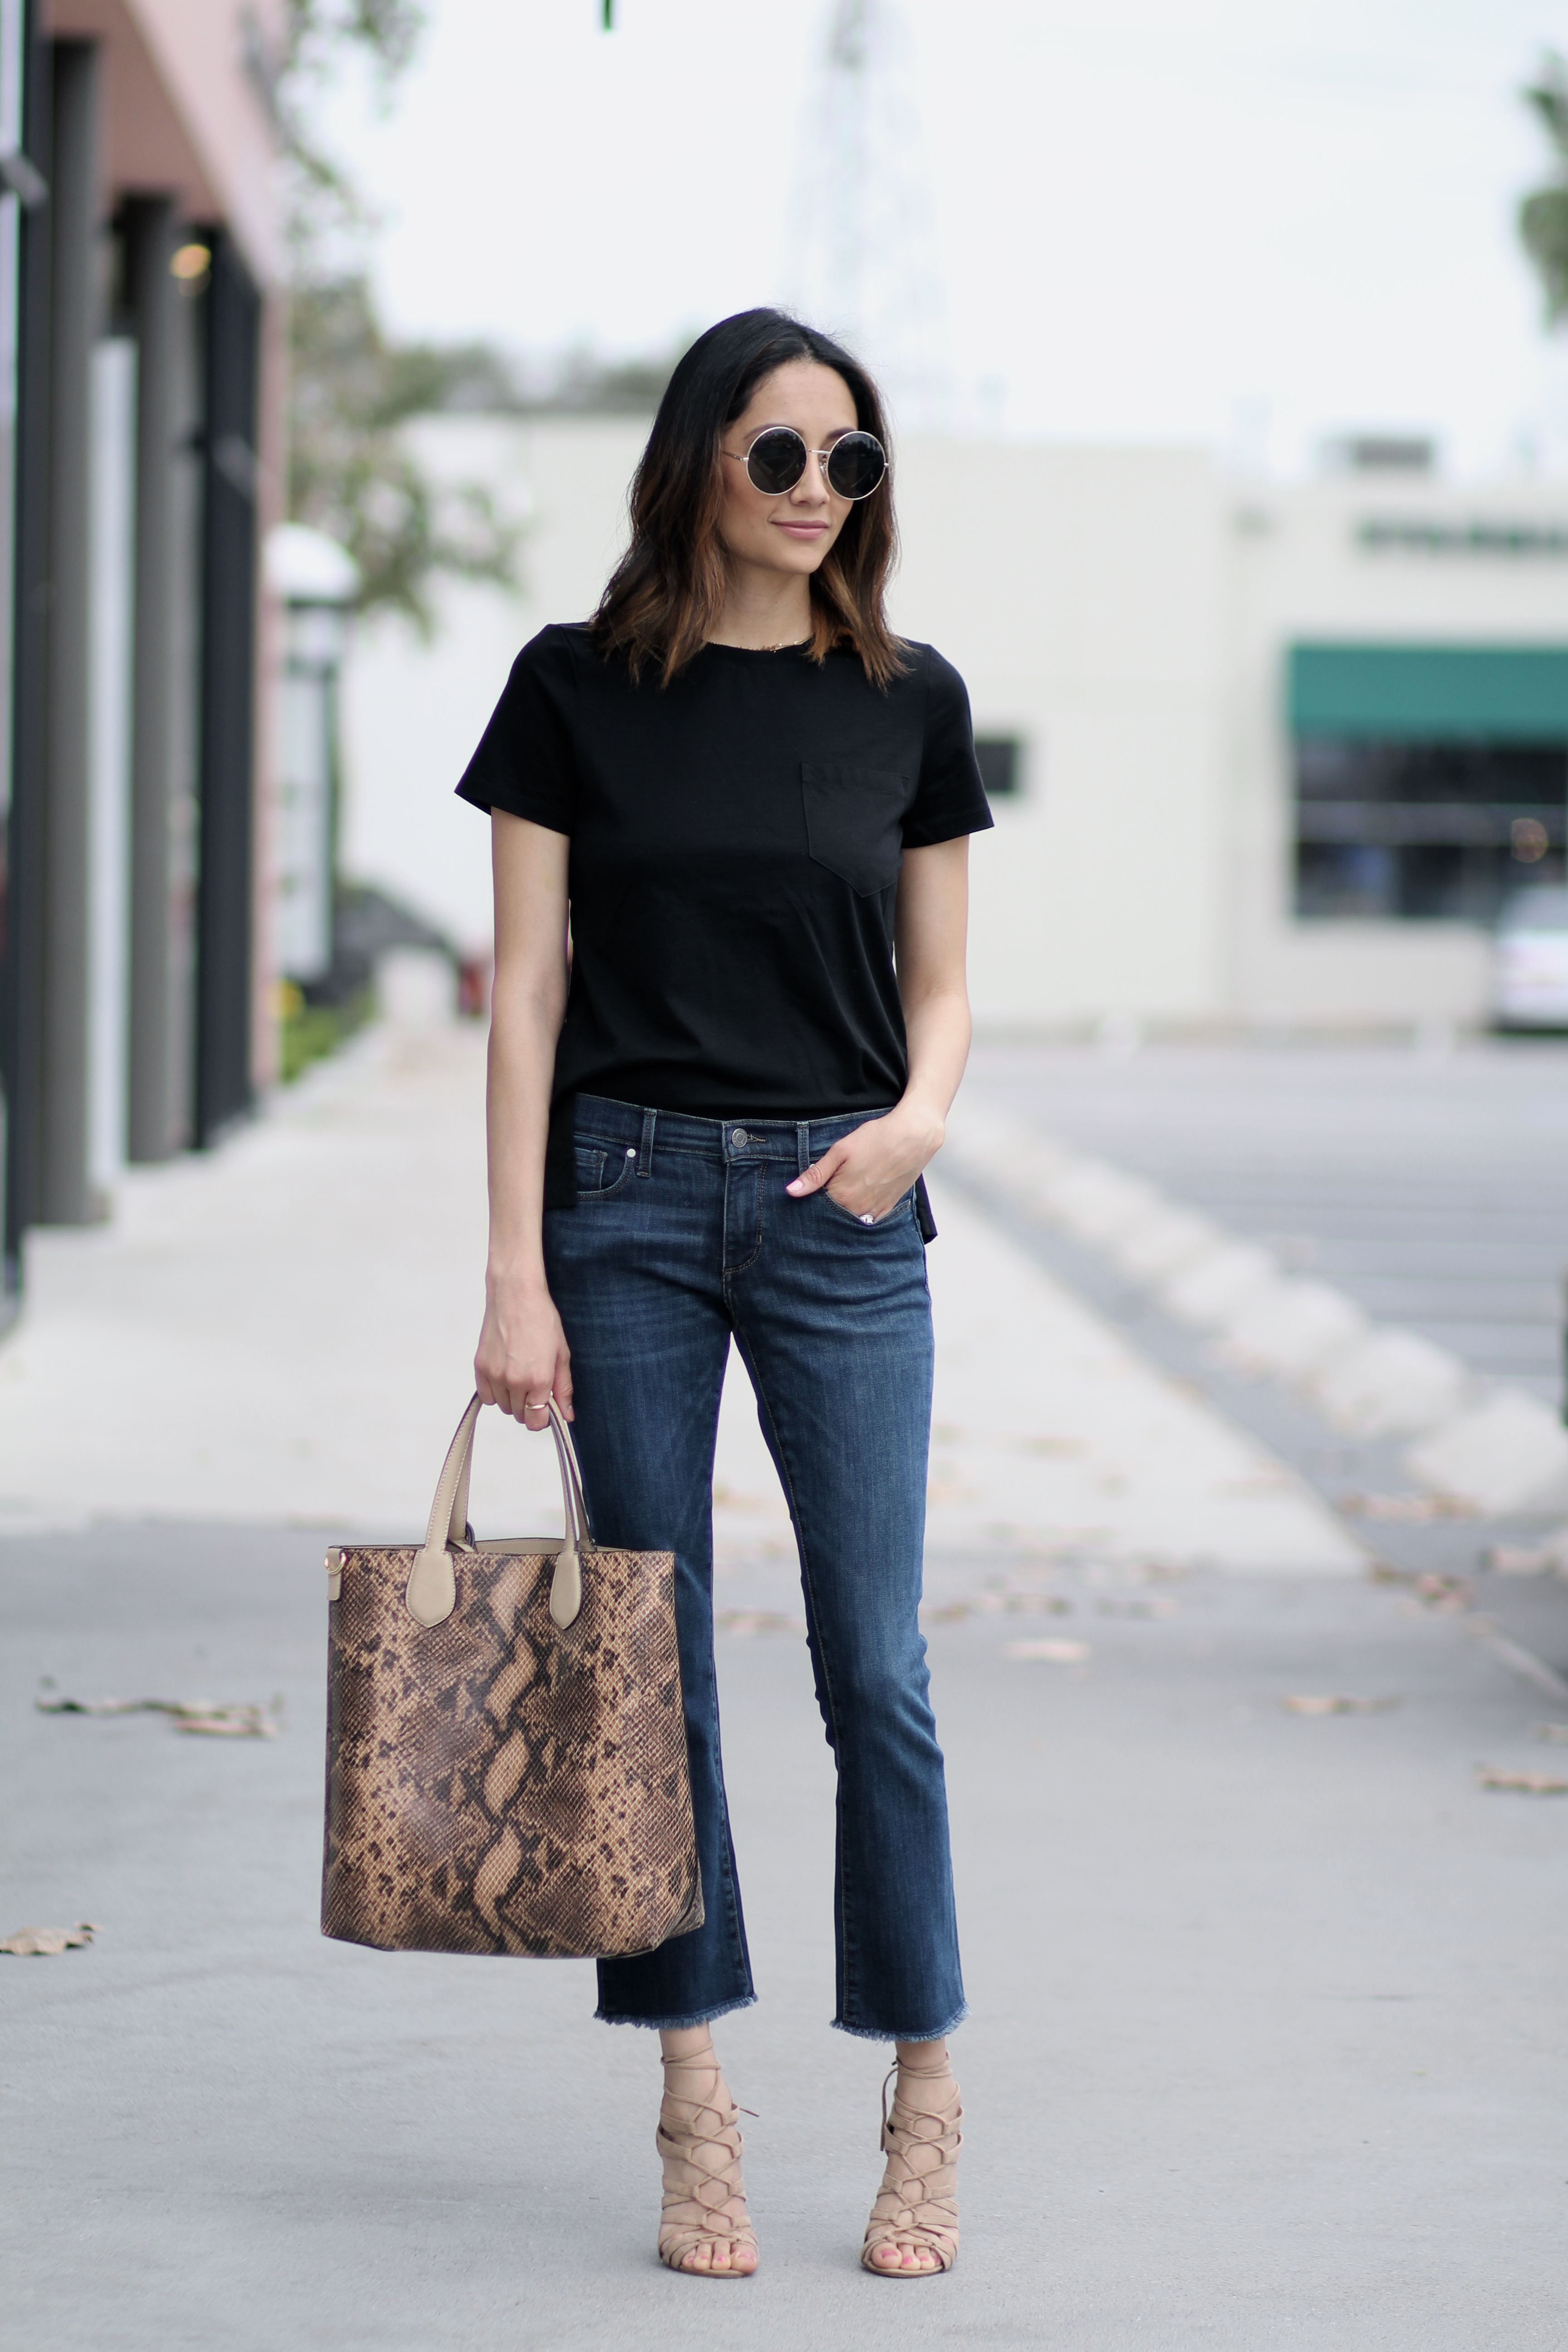 Lifestyle blogger Lilly Beltran of Daily Craving in flare jeans and round sunglasses